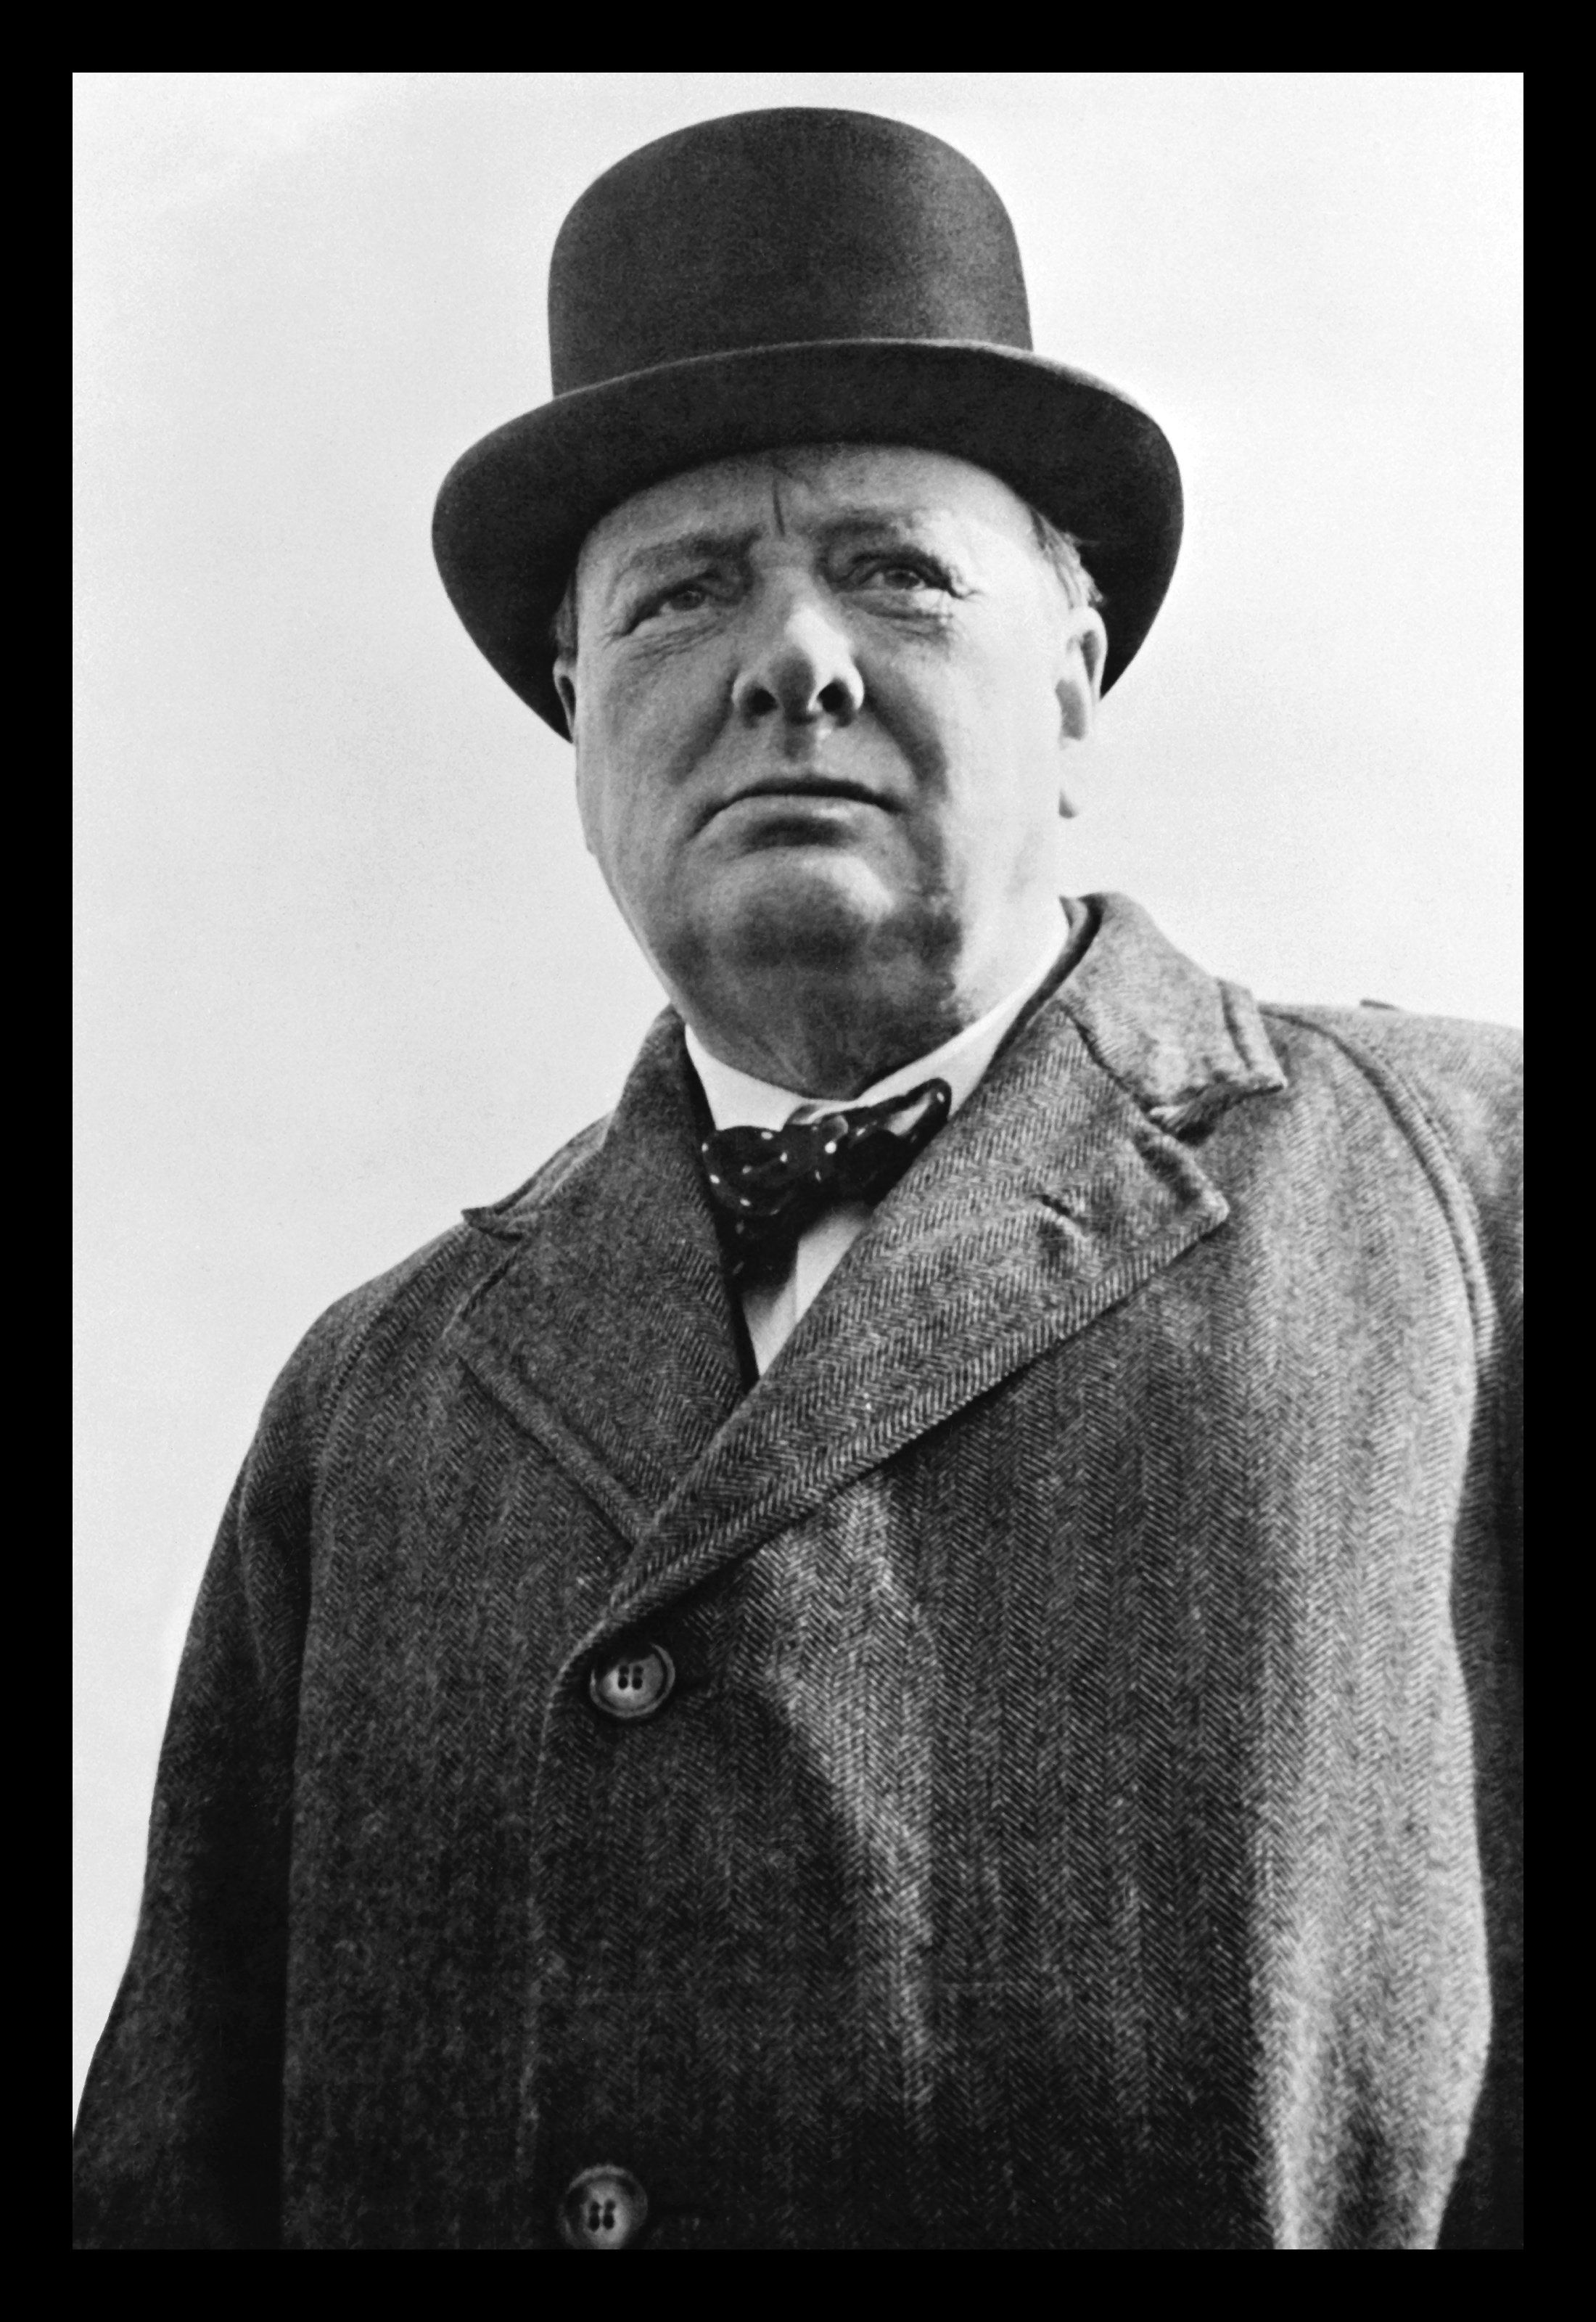 Newly Discovered Essay Shows Churchill Speculated About Extraterrestrial